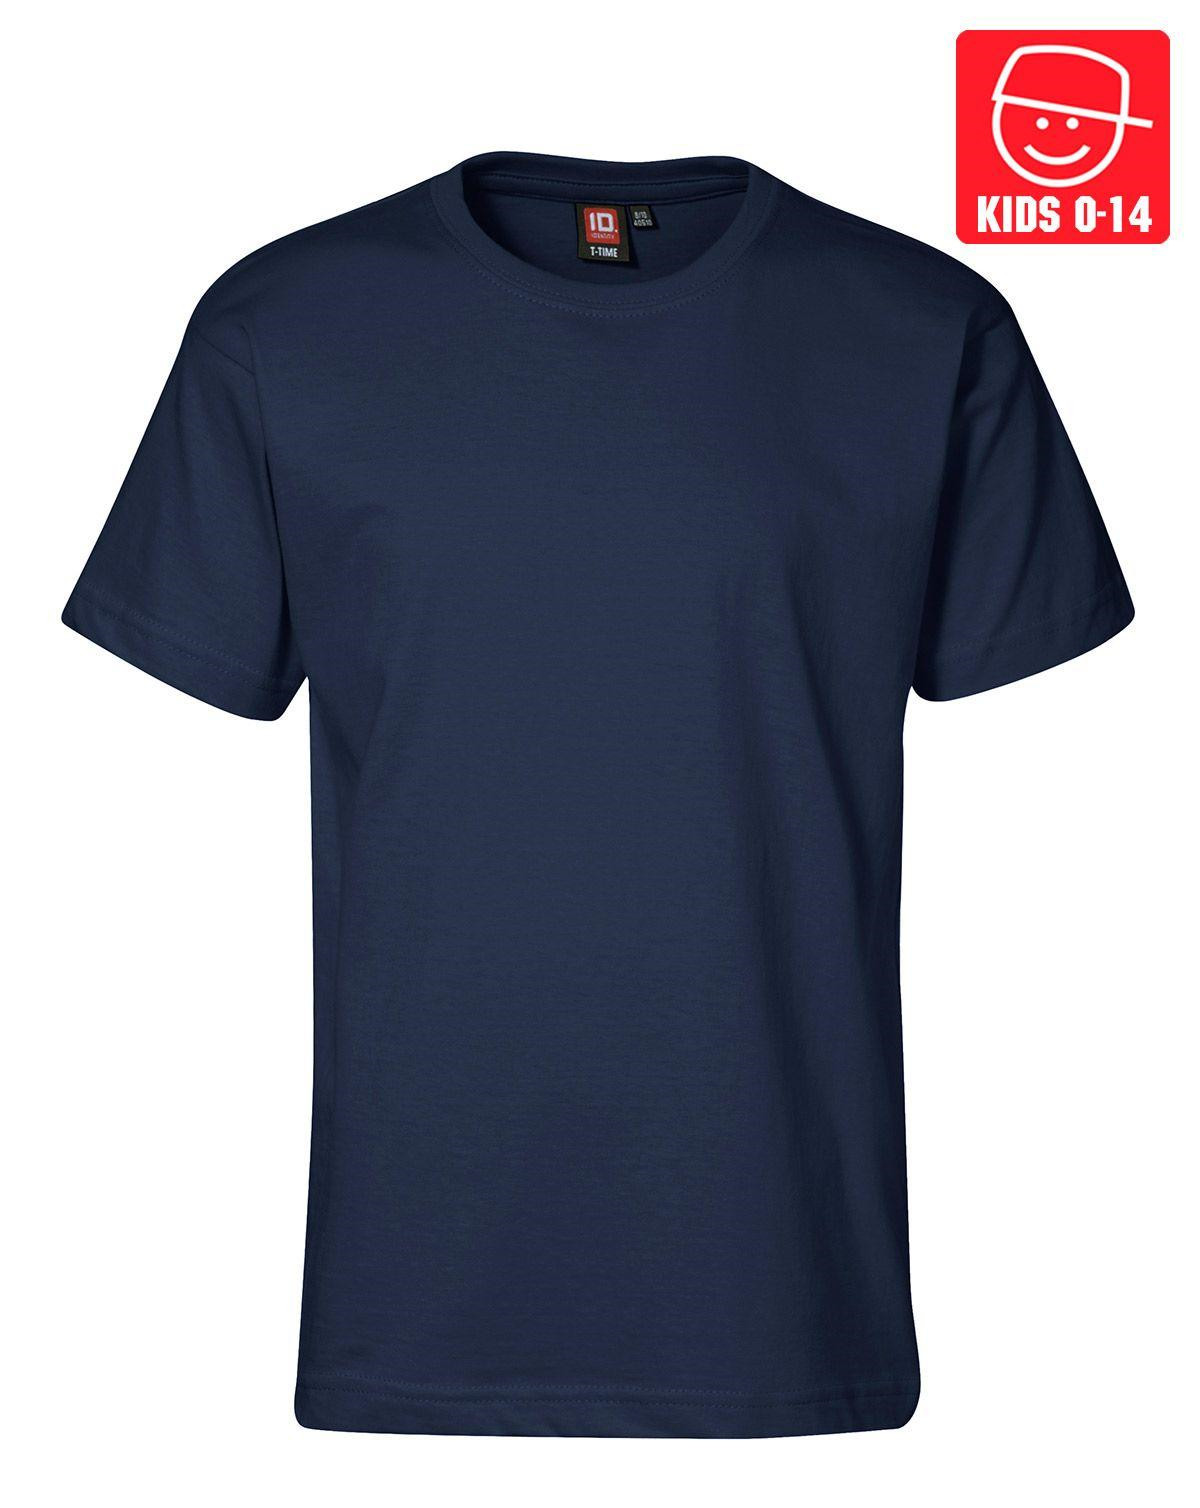 Image of   ID T-TIME T-shirt (Navy, K122)